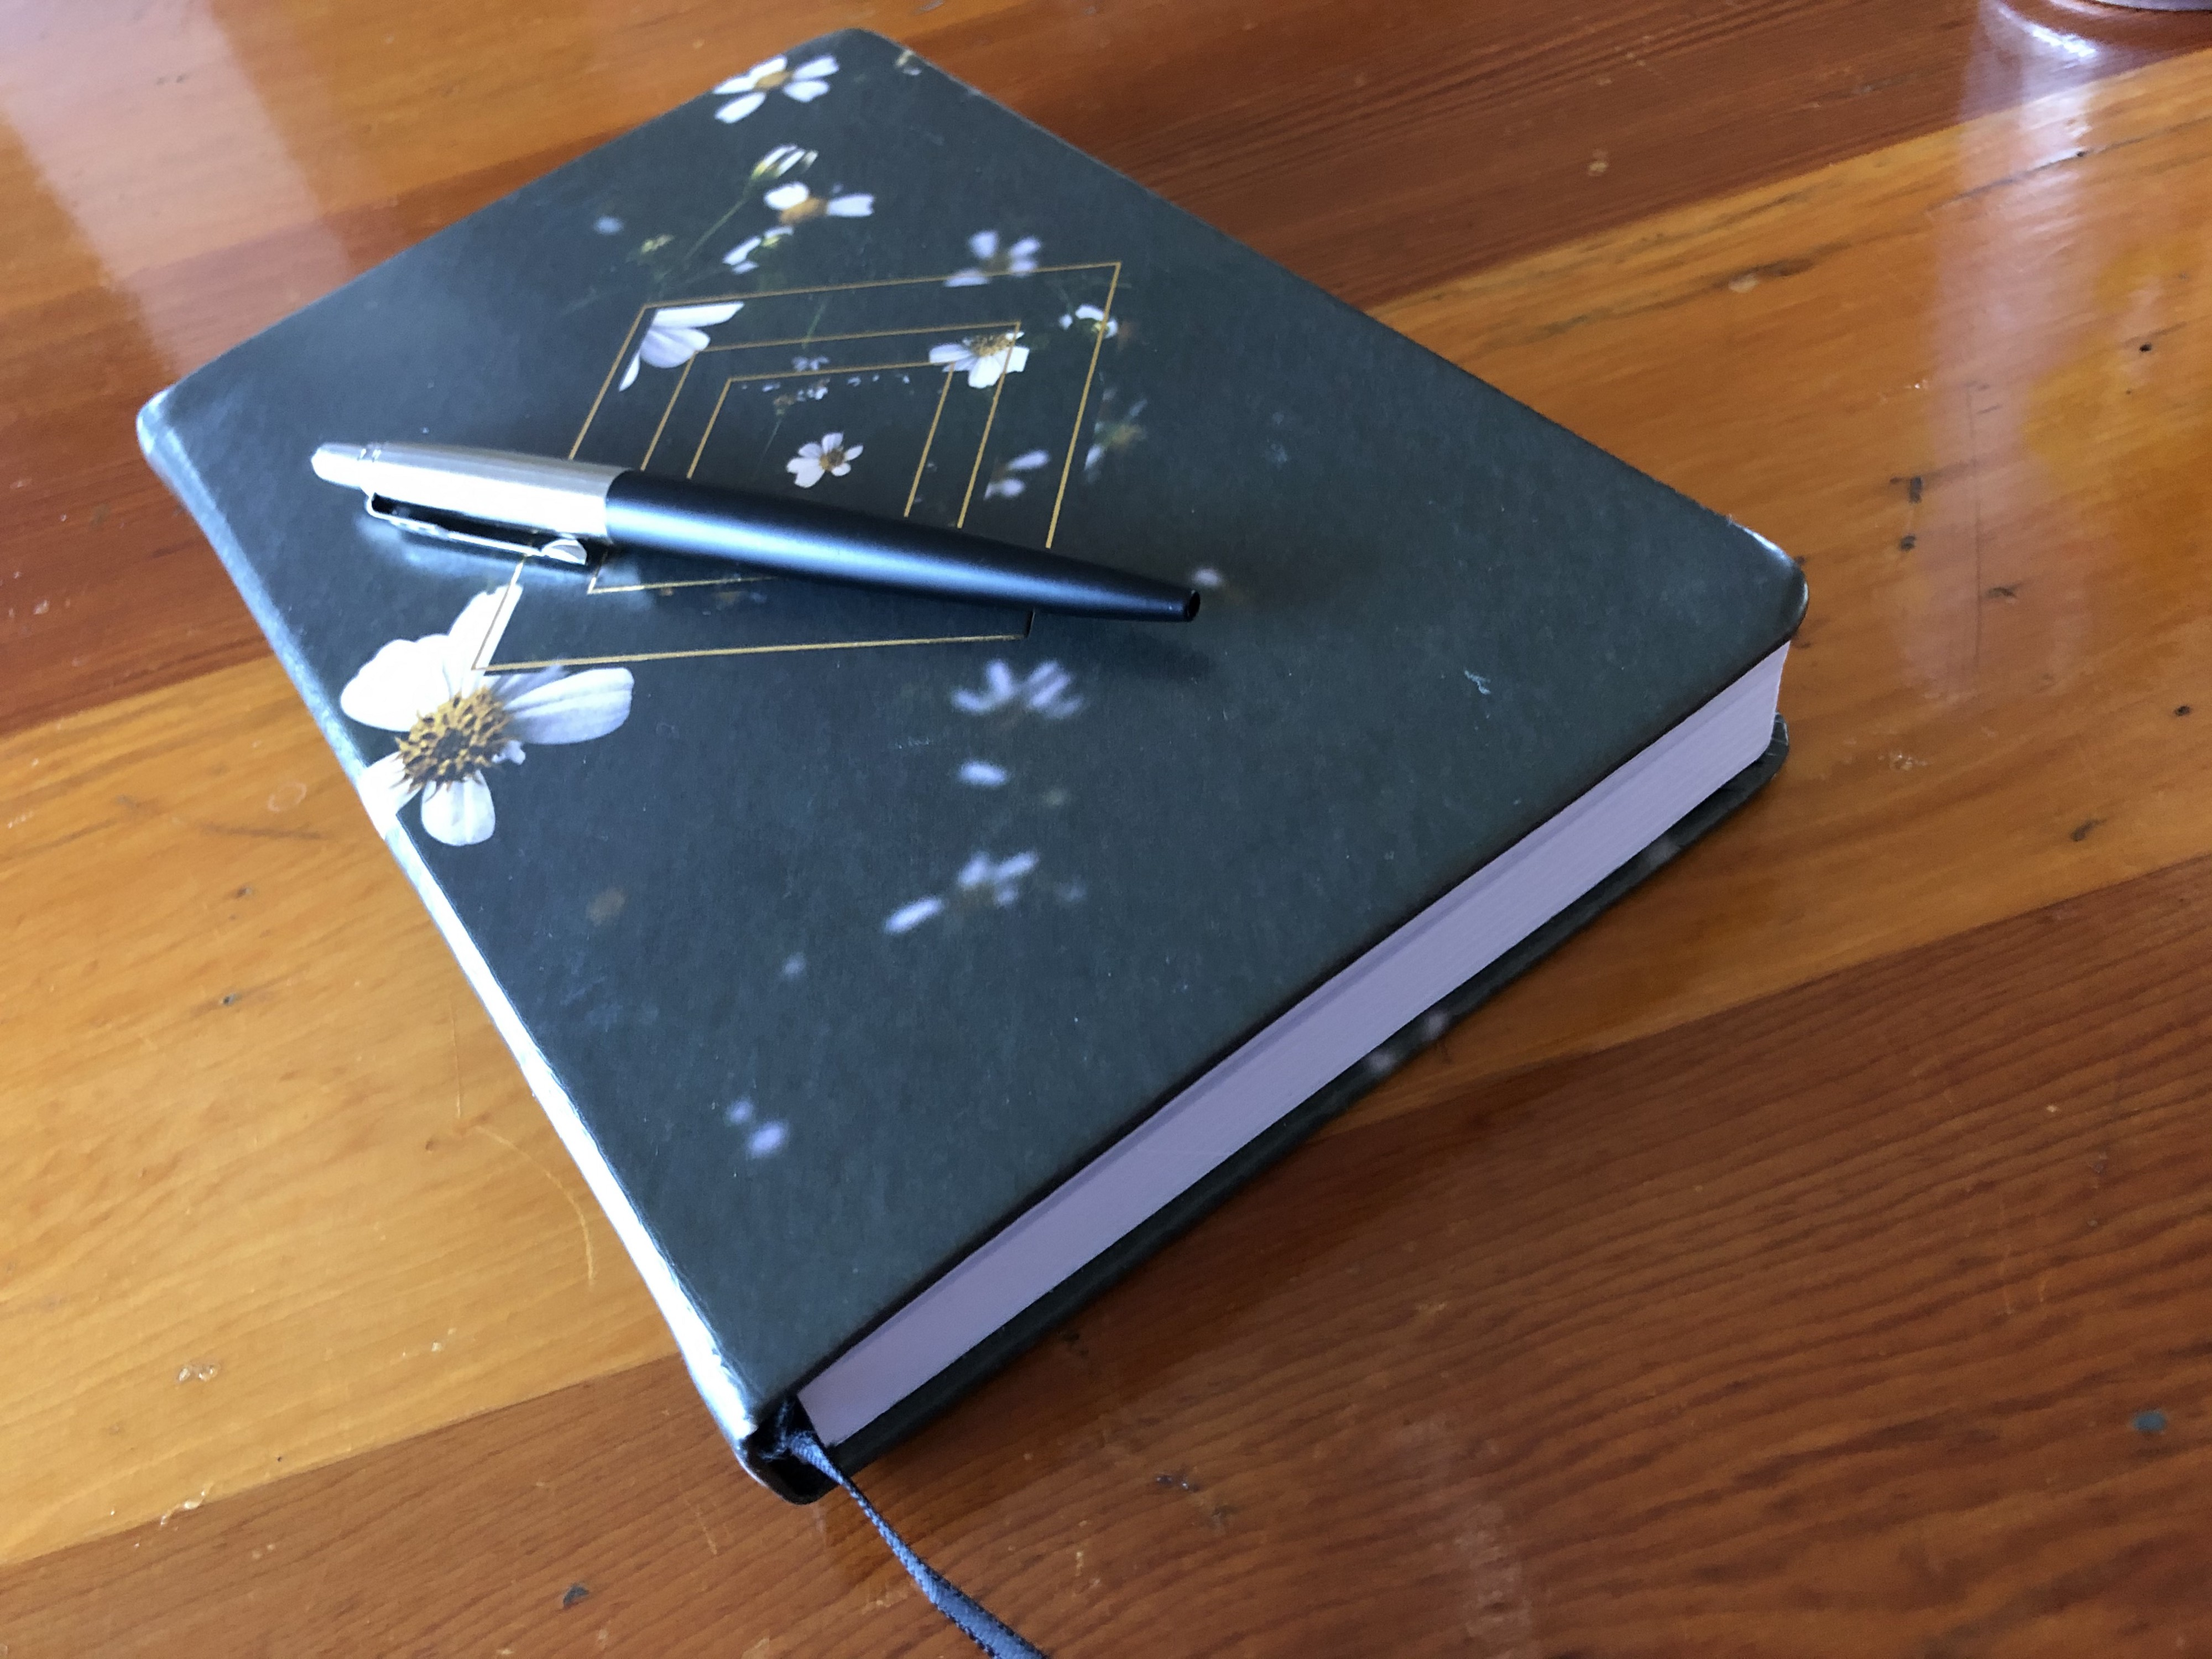 Journal and pen during my 72 hour fast